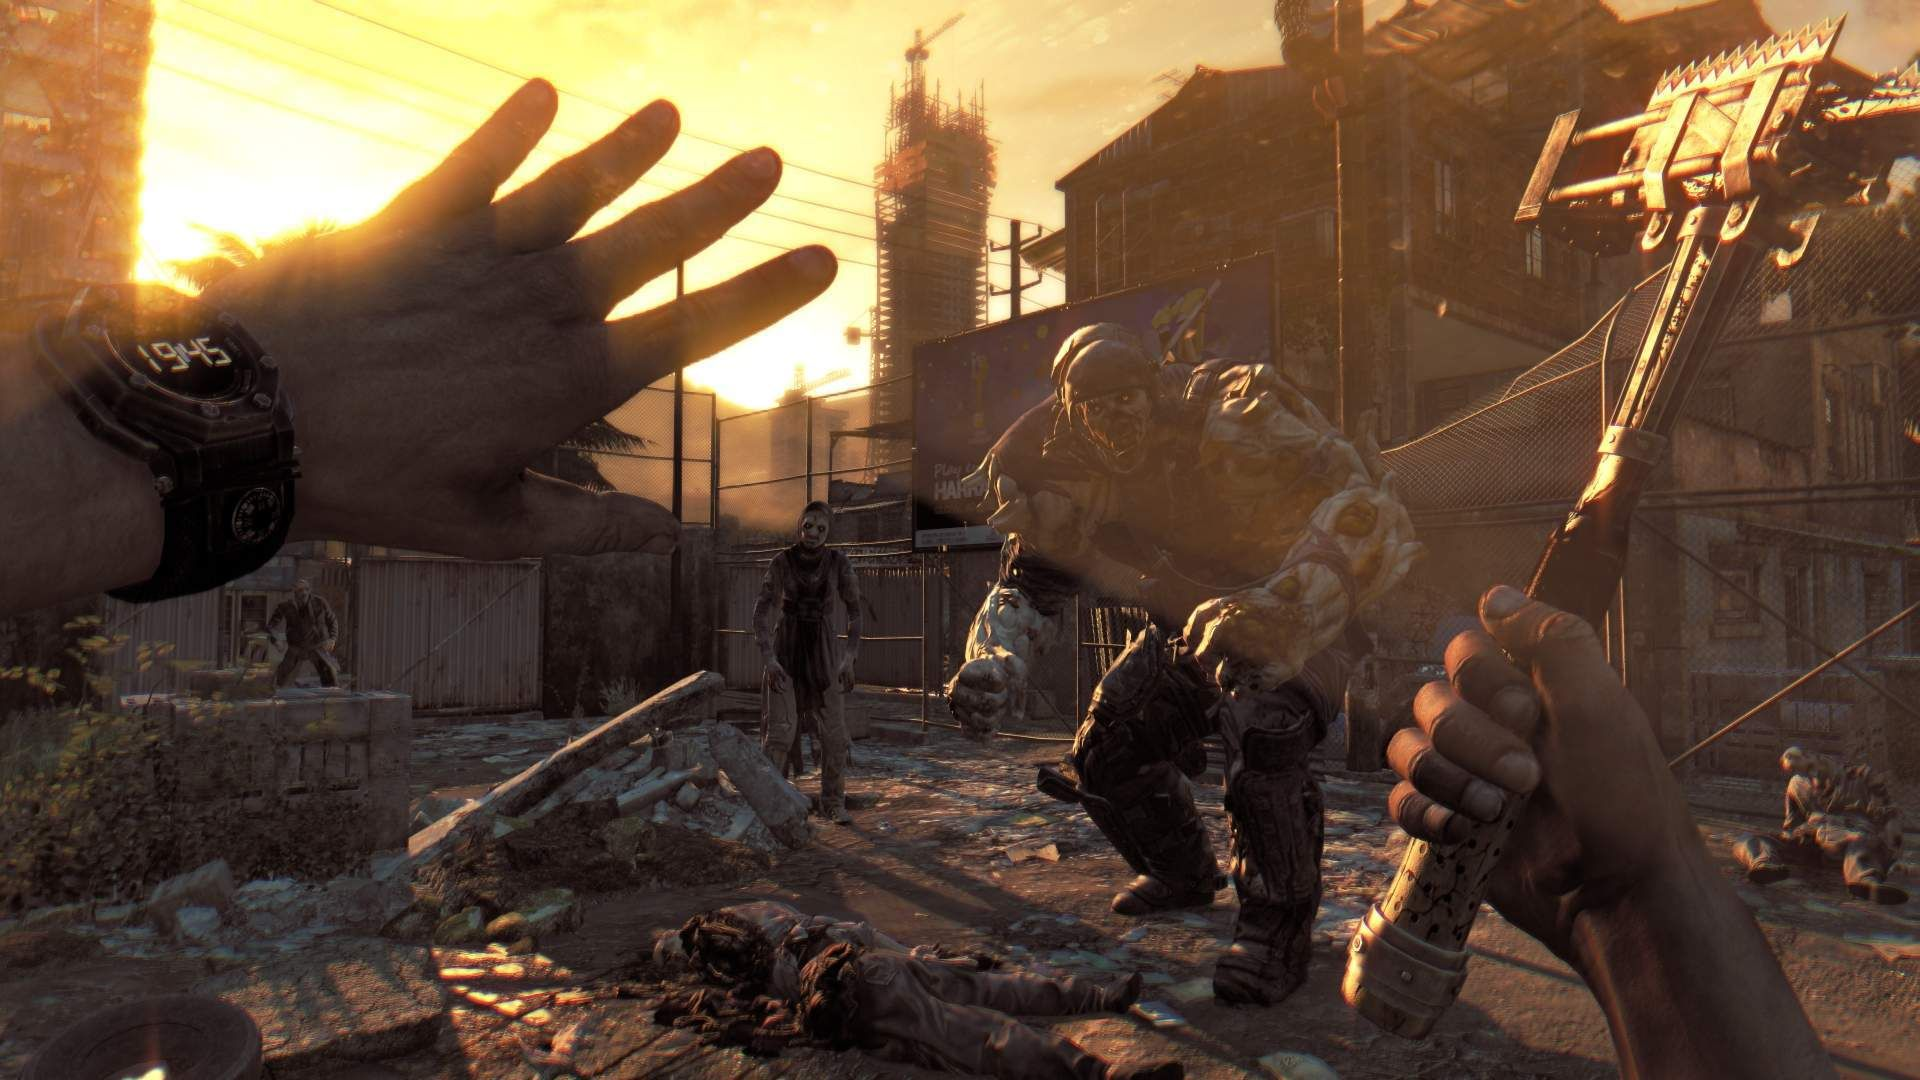 Awesome Artwork U2014 Dying Light: The Following Awesome Ideas